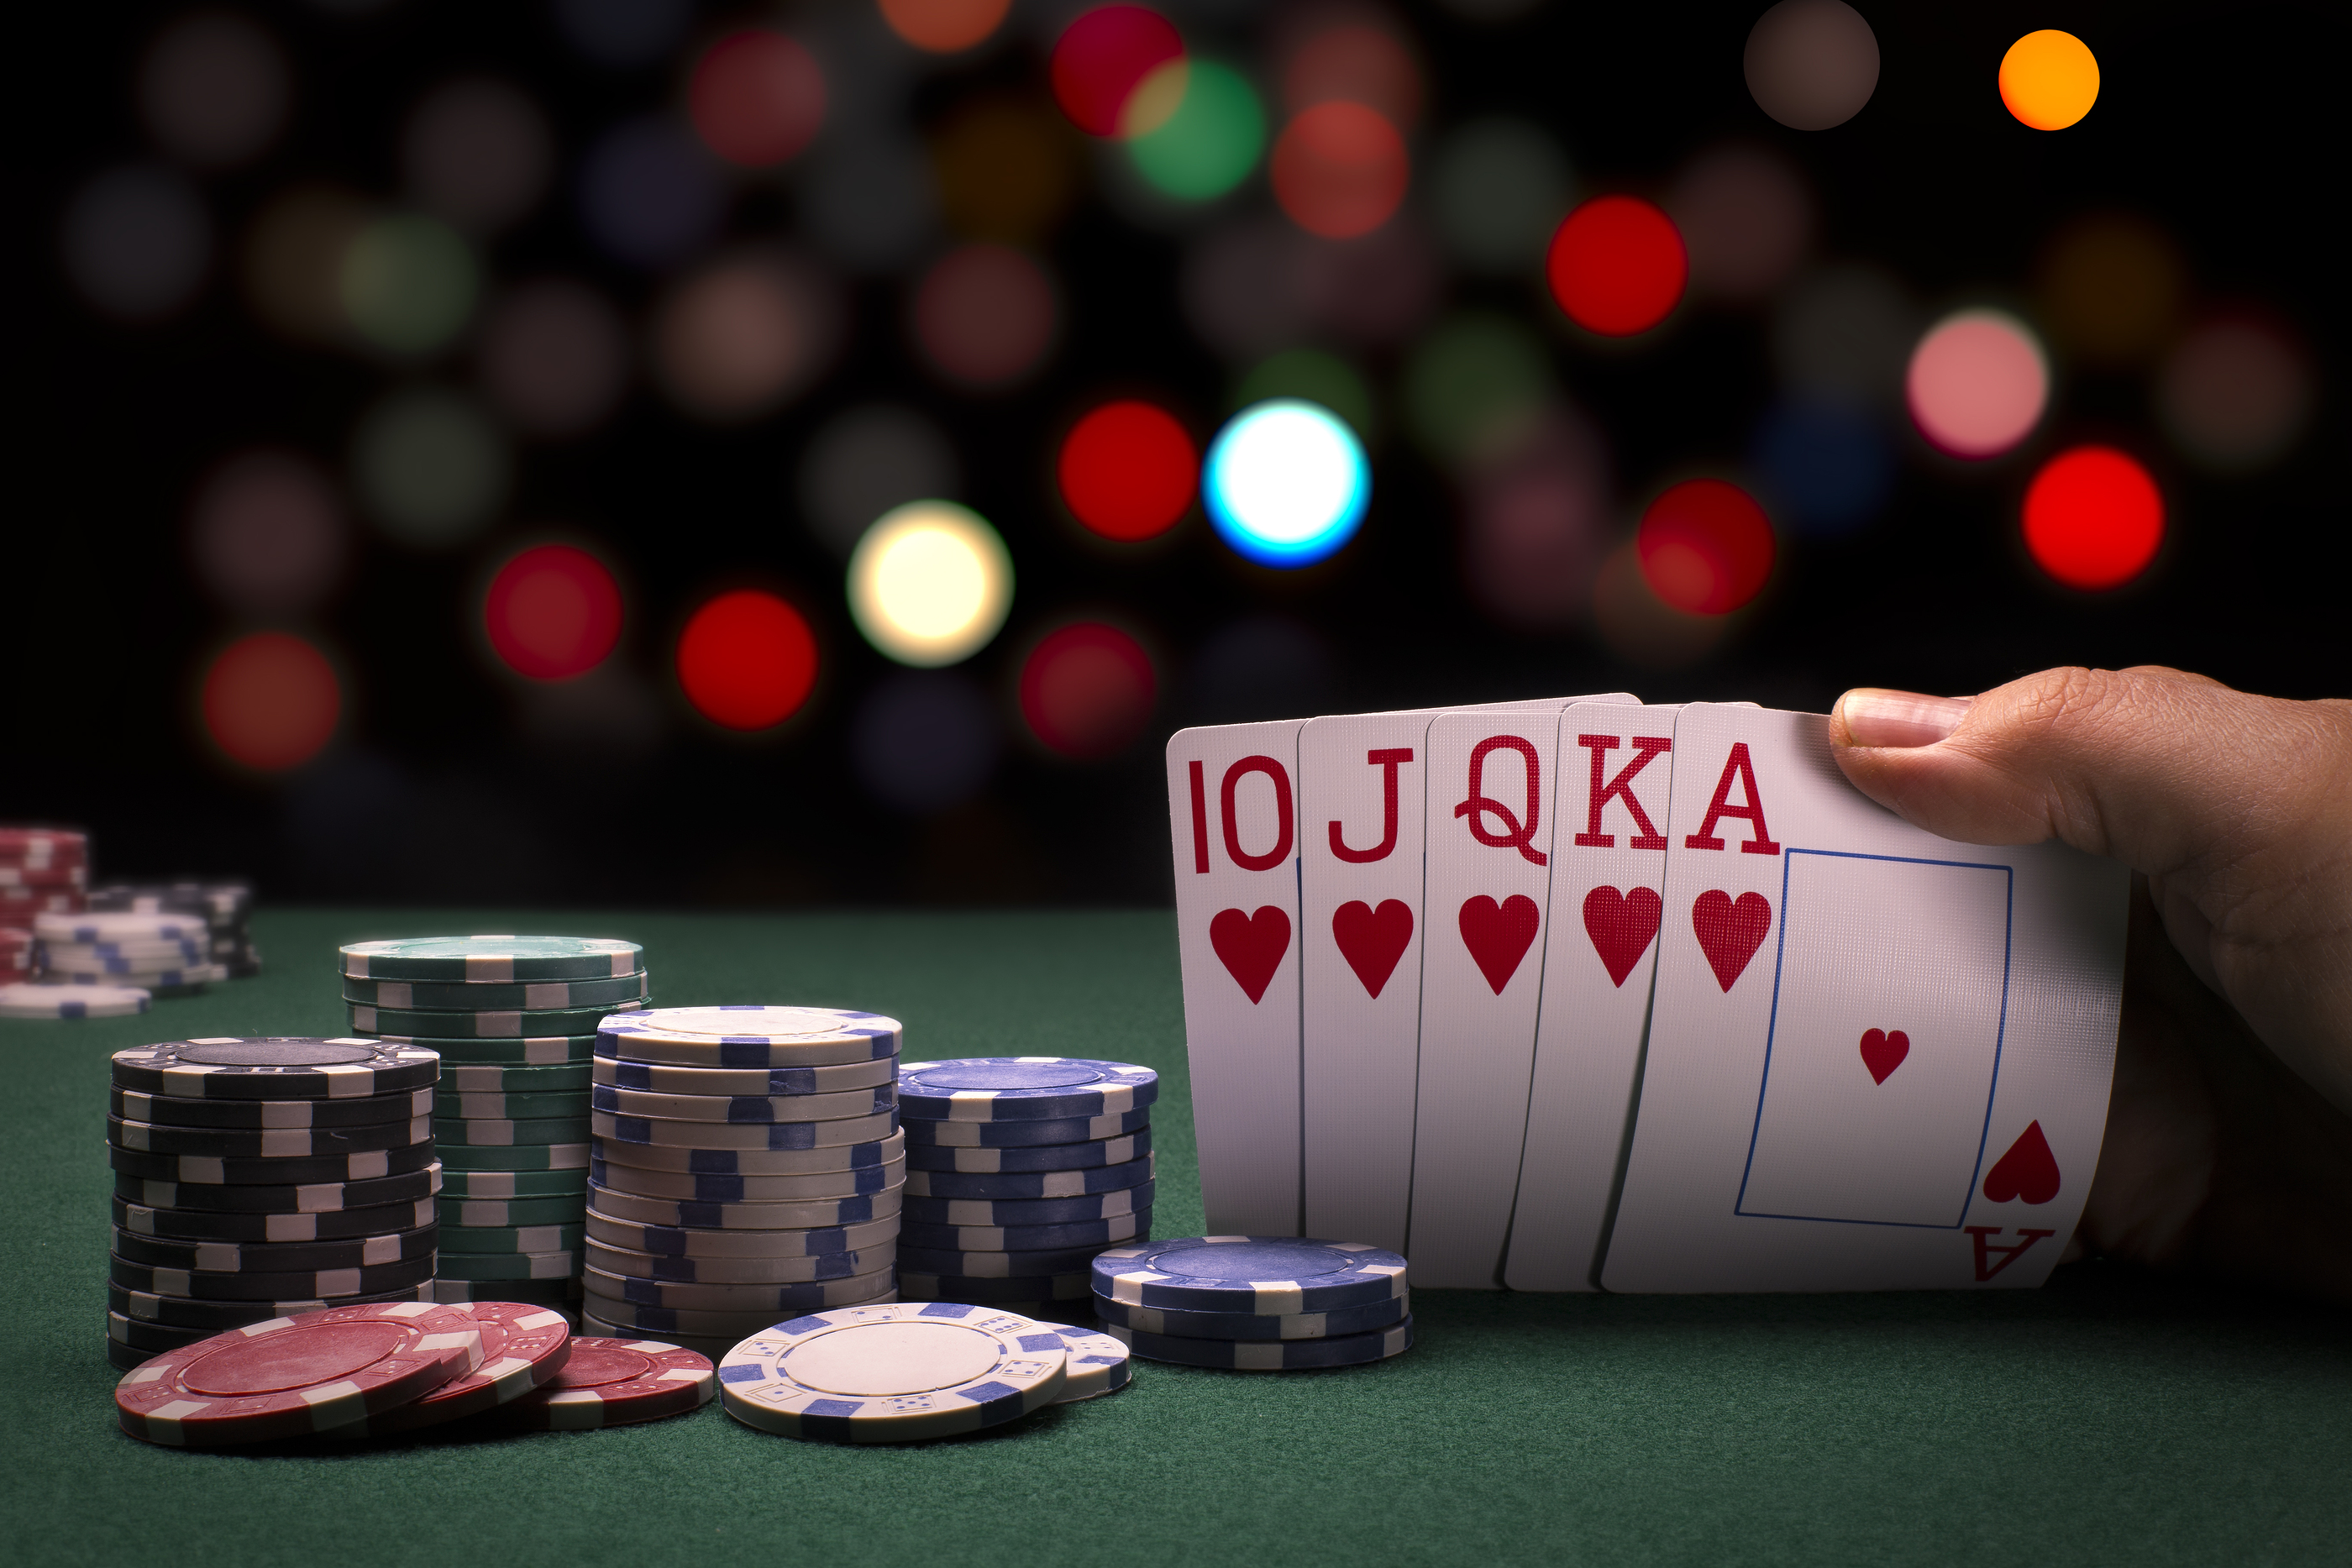 Ideal Online Poker Sites For Real Money 2020 In Ireland